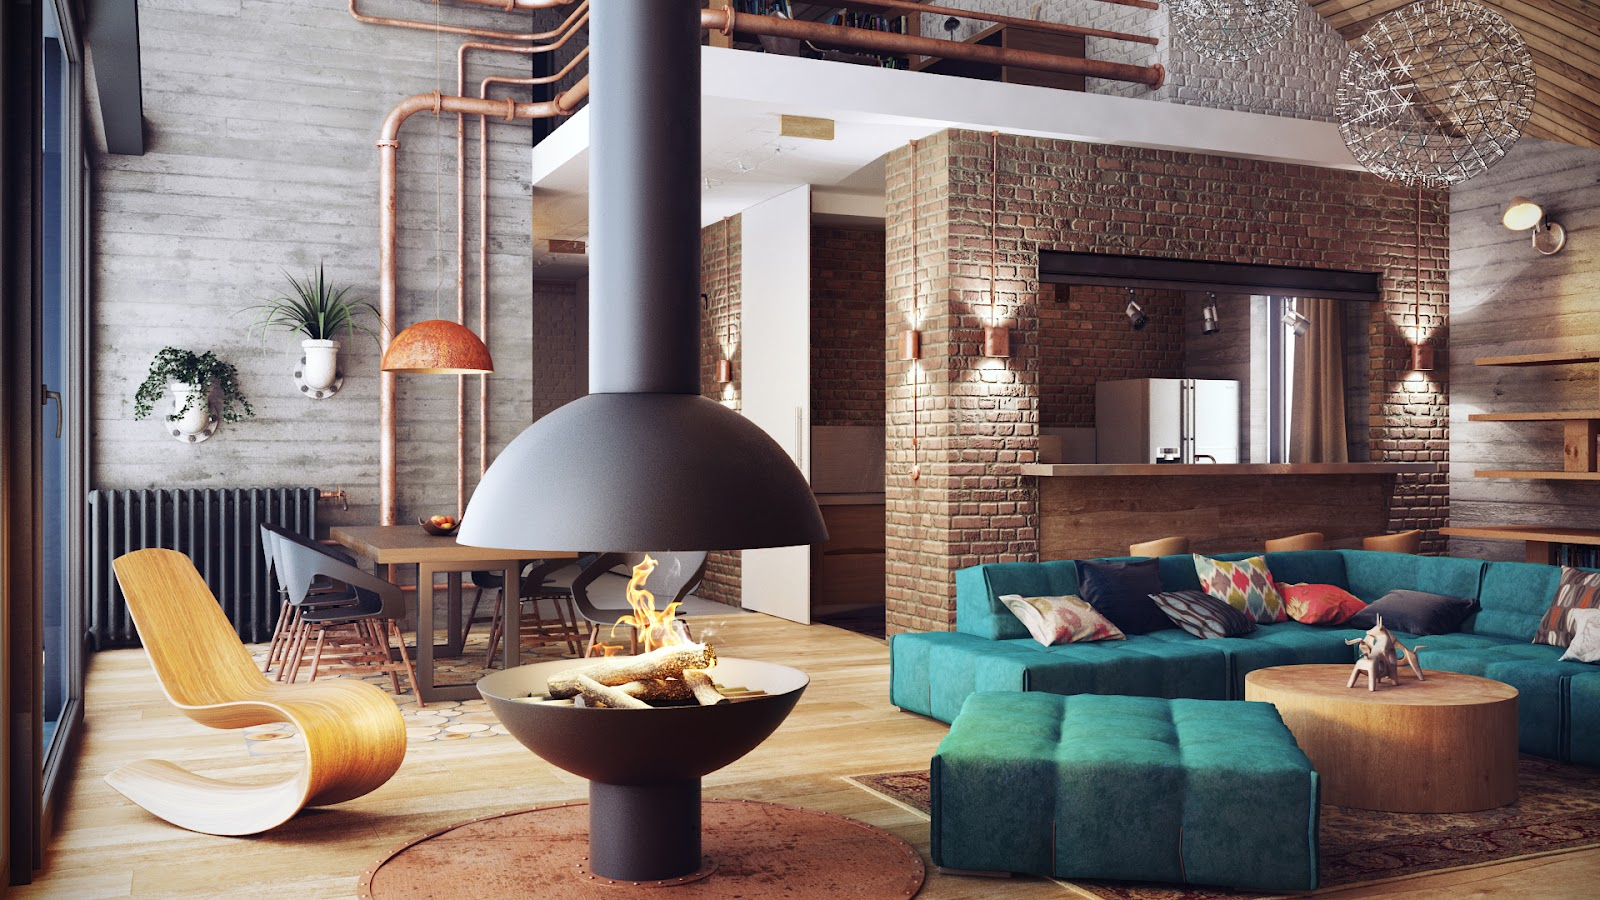 Loft Interior Of The Living Room With Original Safe Fireplace And Turquoise  Furniture ... Part 57